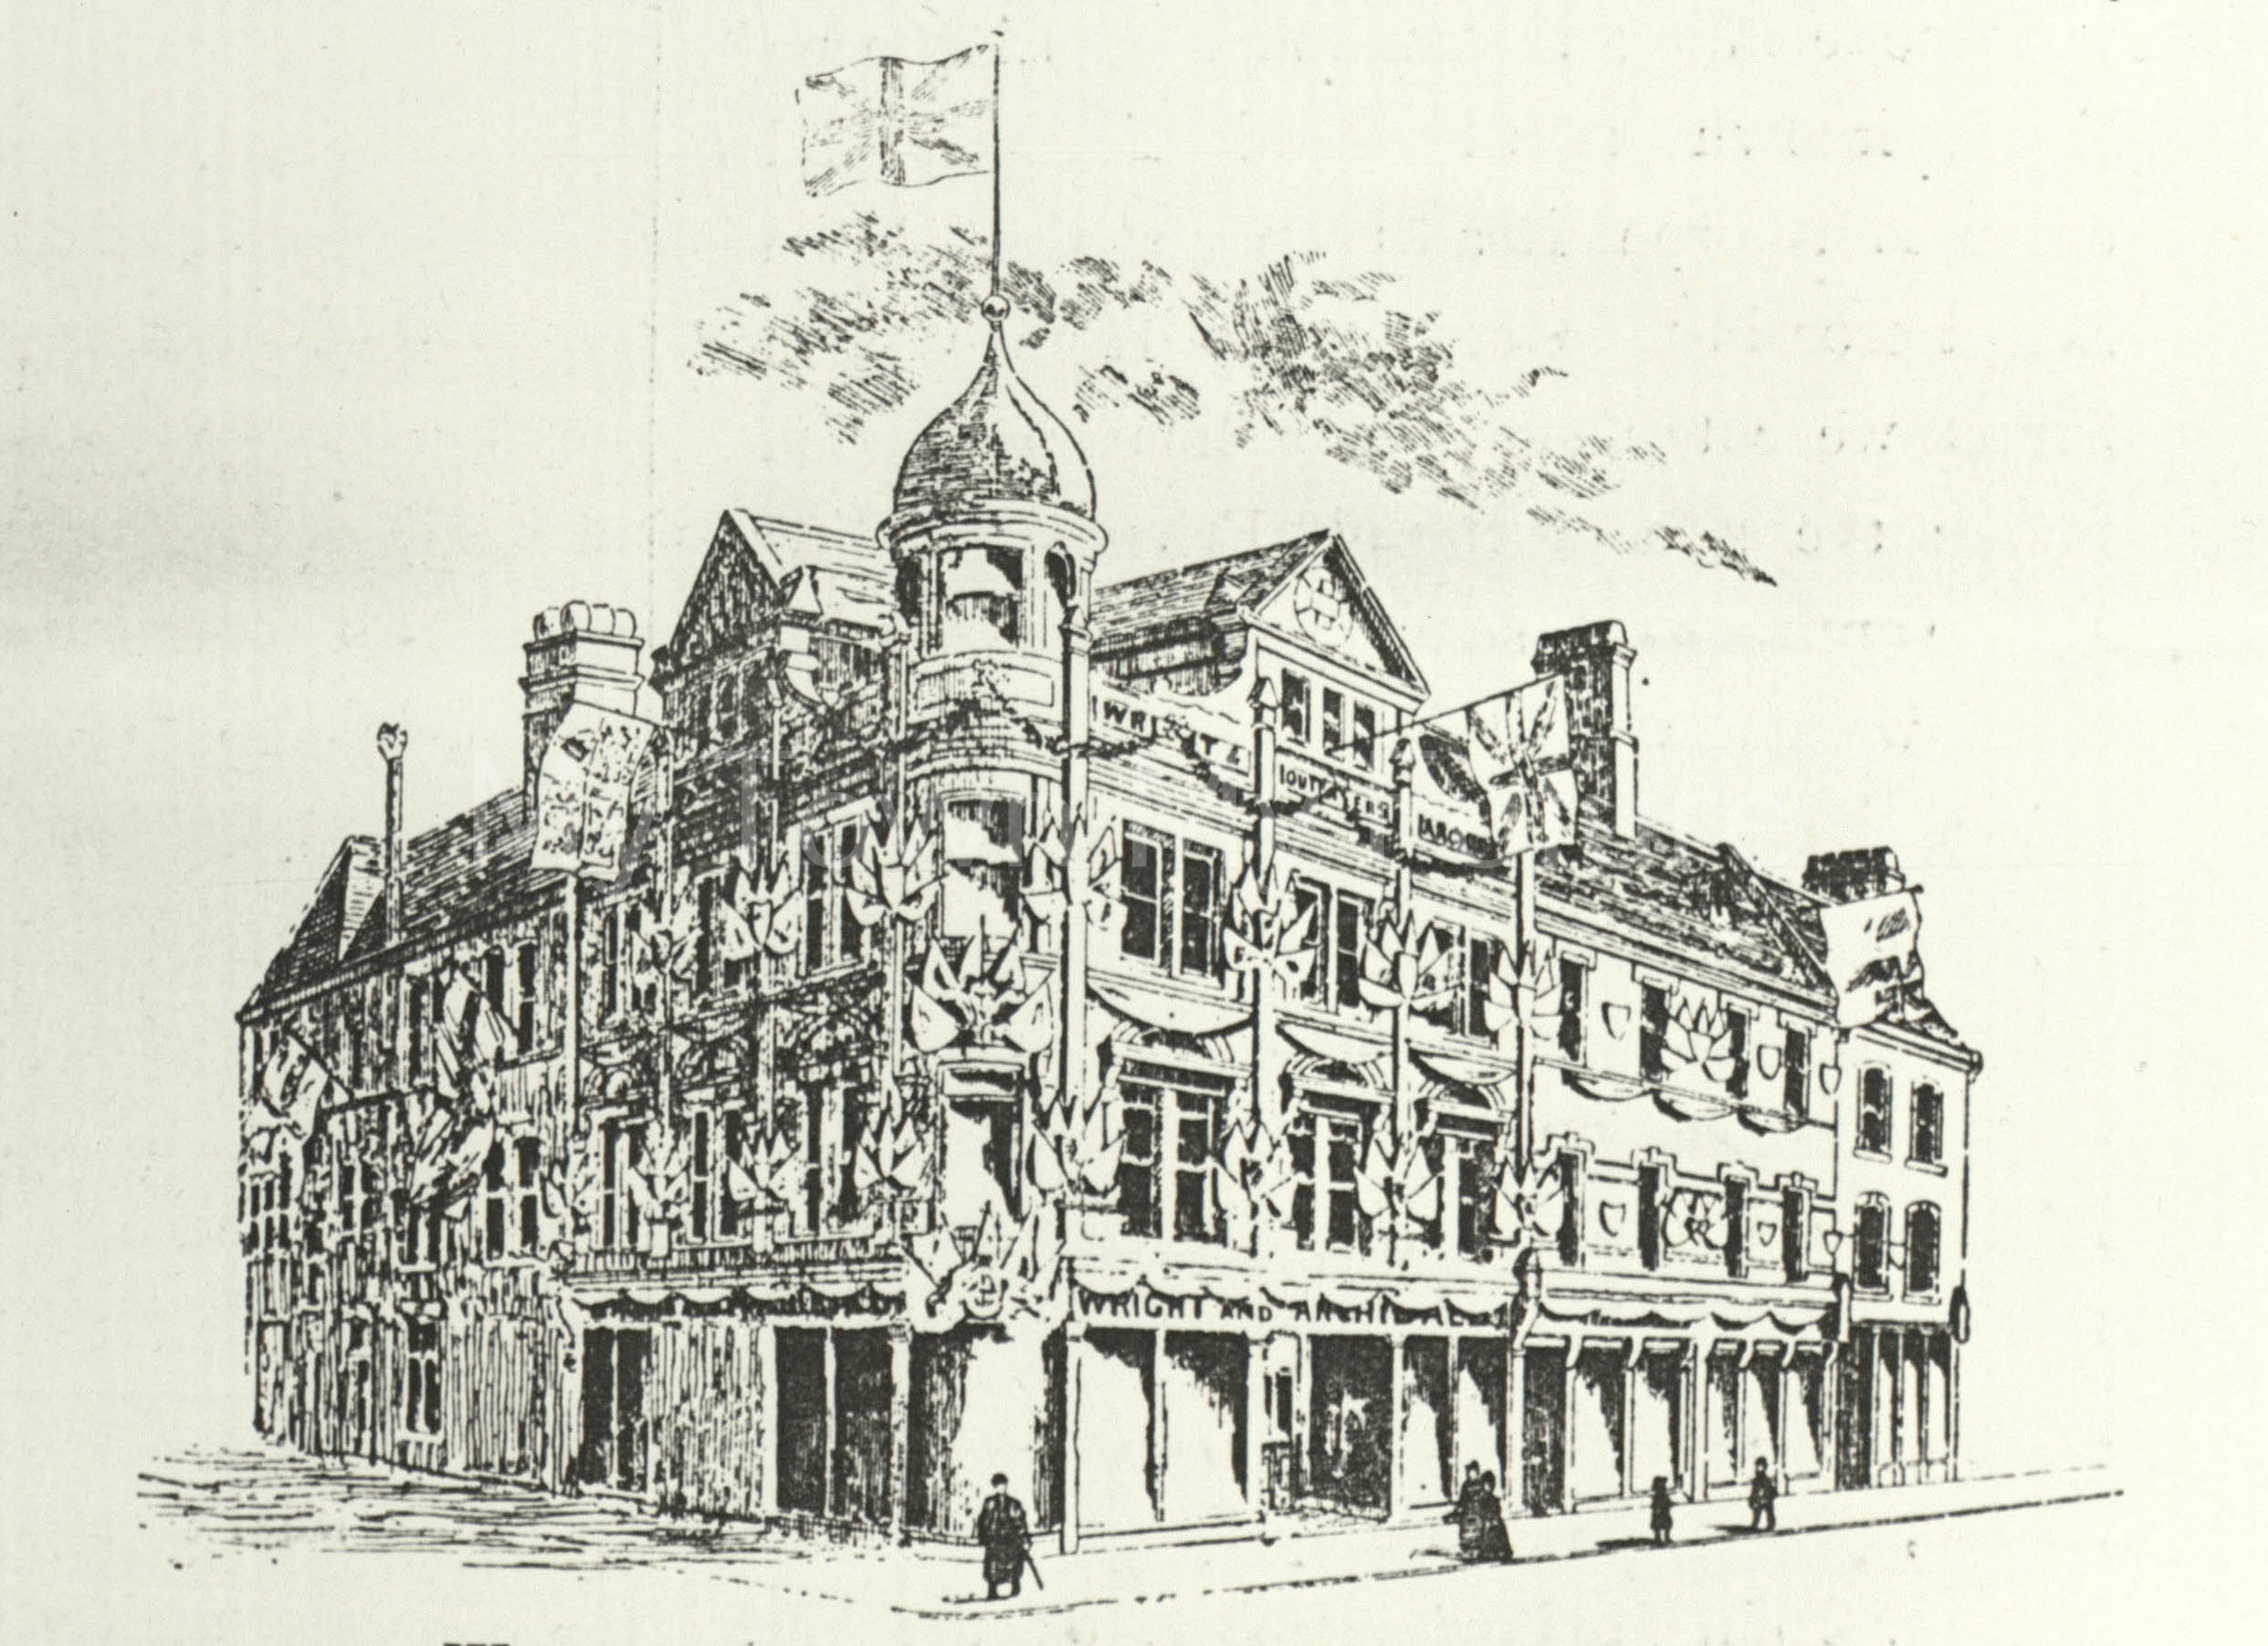 Wright and Archibalds, Sussex Street, St. Hilda's c1889